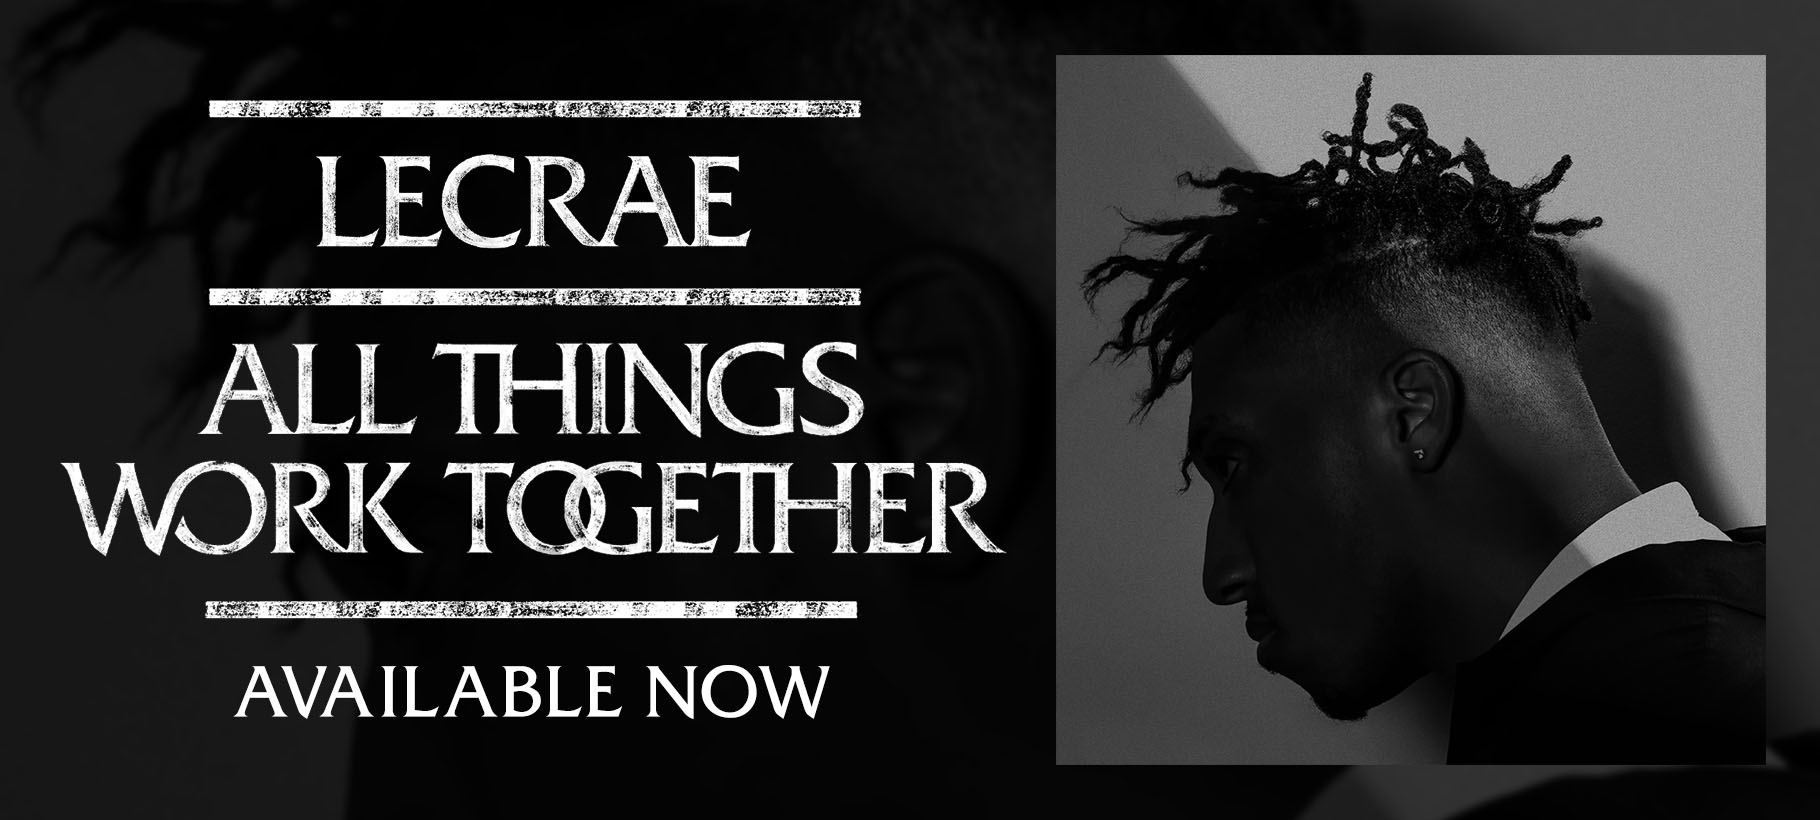 Find Lecrae's All Things Work Together in Stores!